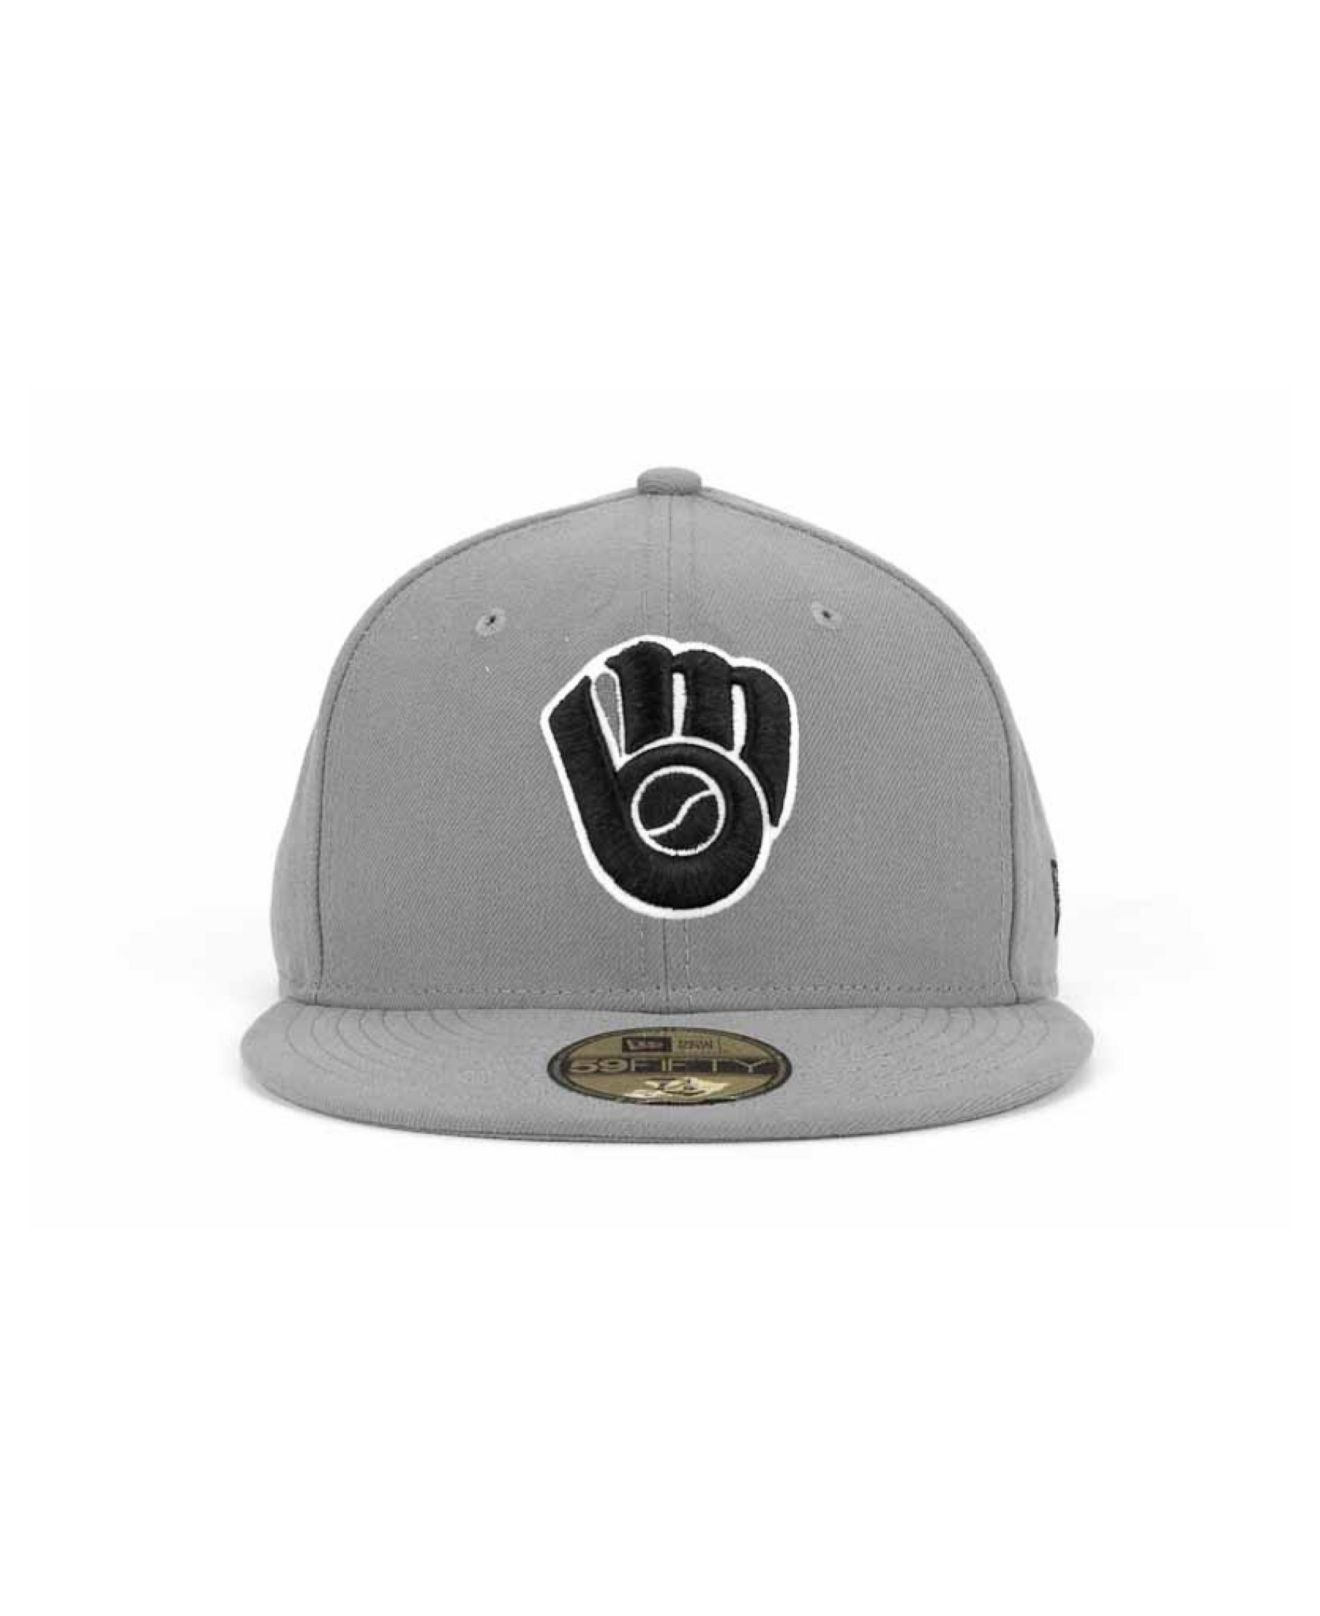 new product d0f41 7d7ab KTZ Milwaukee Brewers Mlb Gray Bw 59fifty Cap in Gray for Men - Lyst